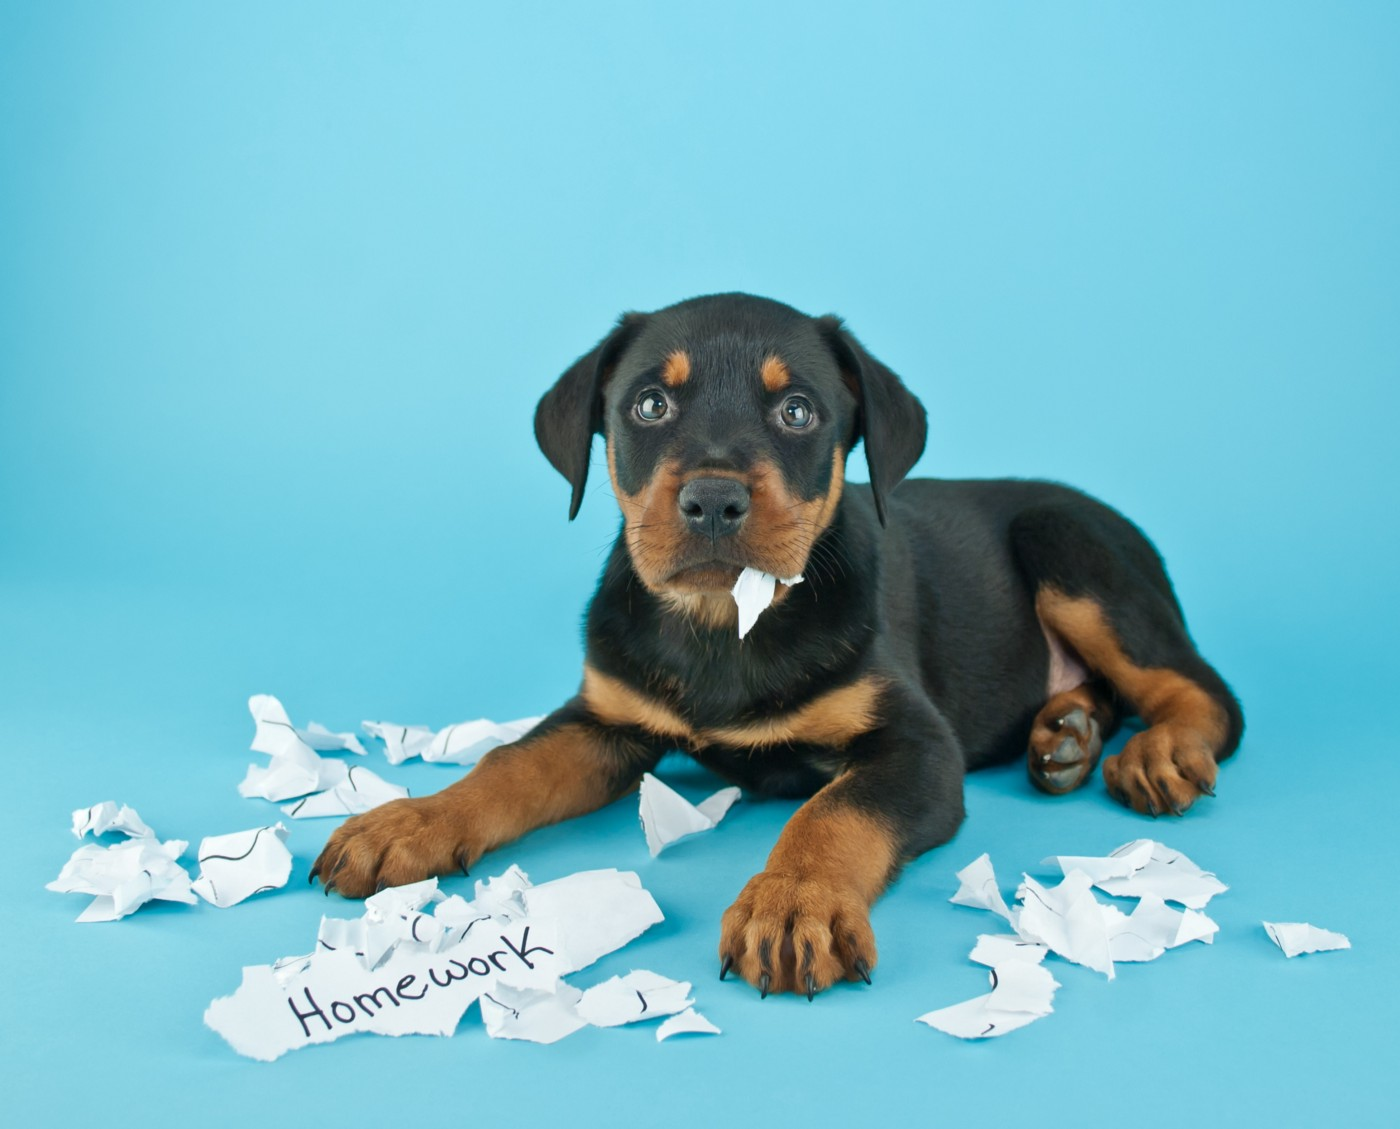 Hi there! BichoDoMato here. This is the Shutterstock description: Funny Rottweiler puppy that looks like he is eating someone's homework on a blue background with copy space